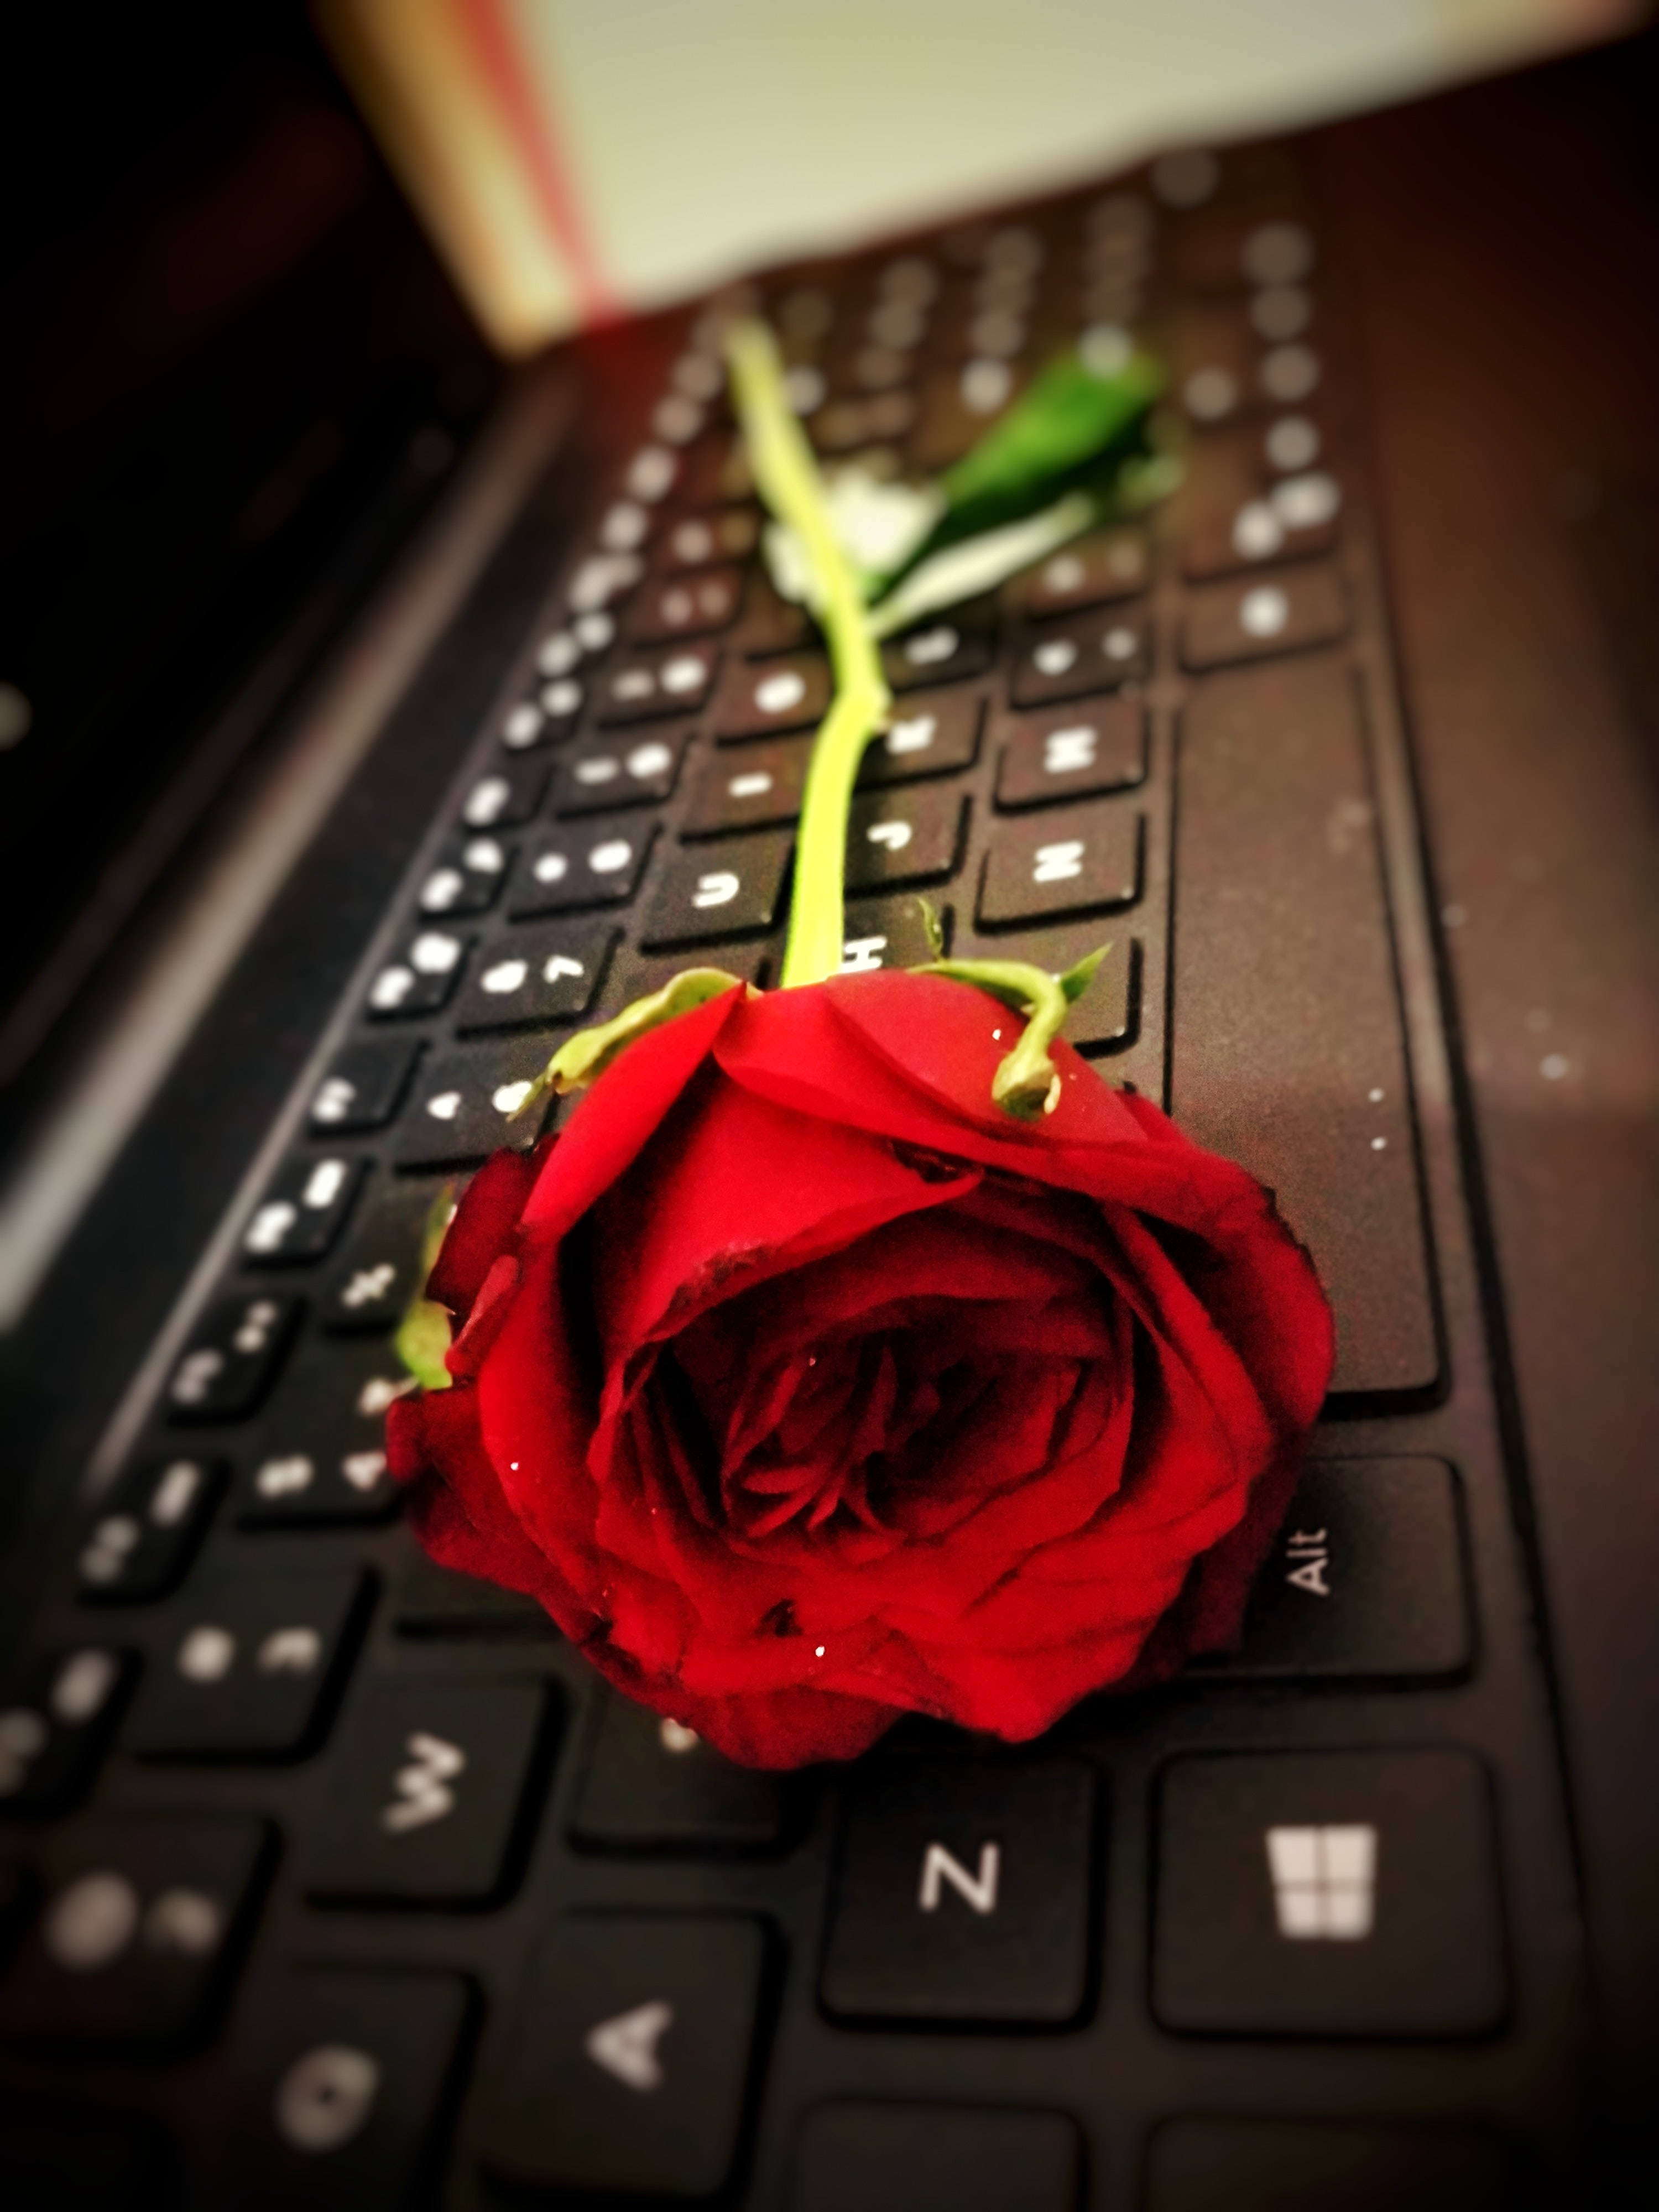 Free stock photo of happy rose day, keyboard, Red Rose